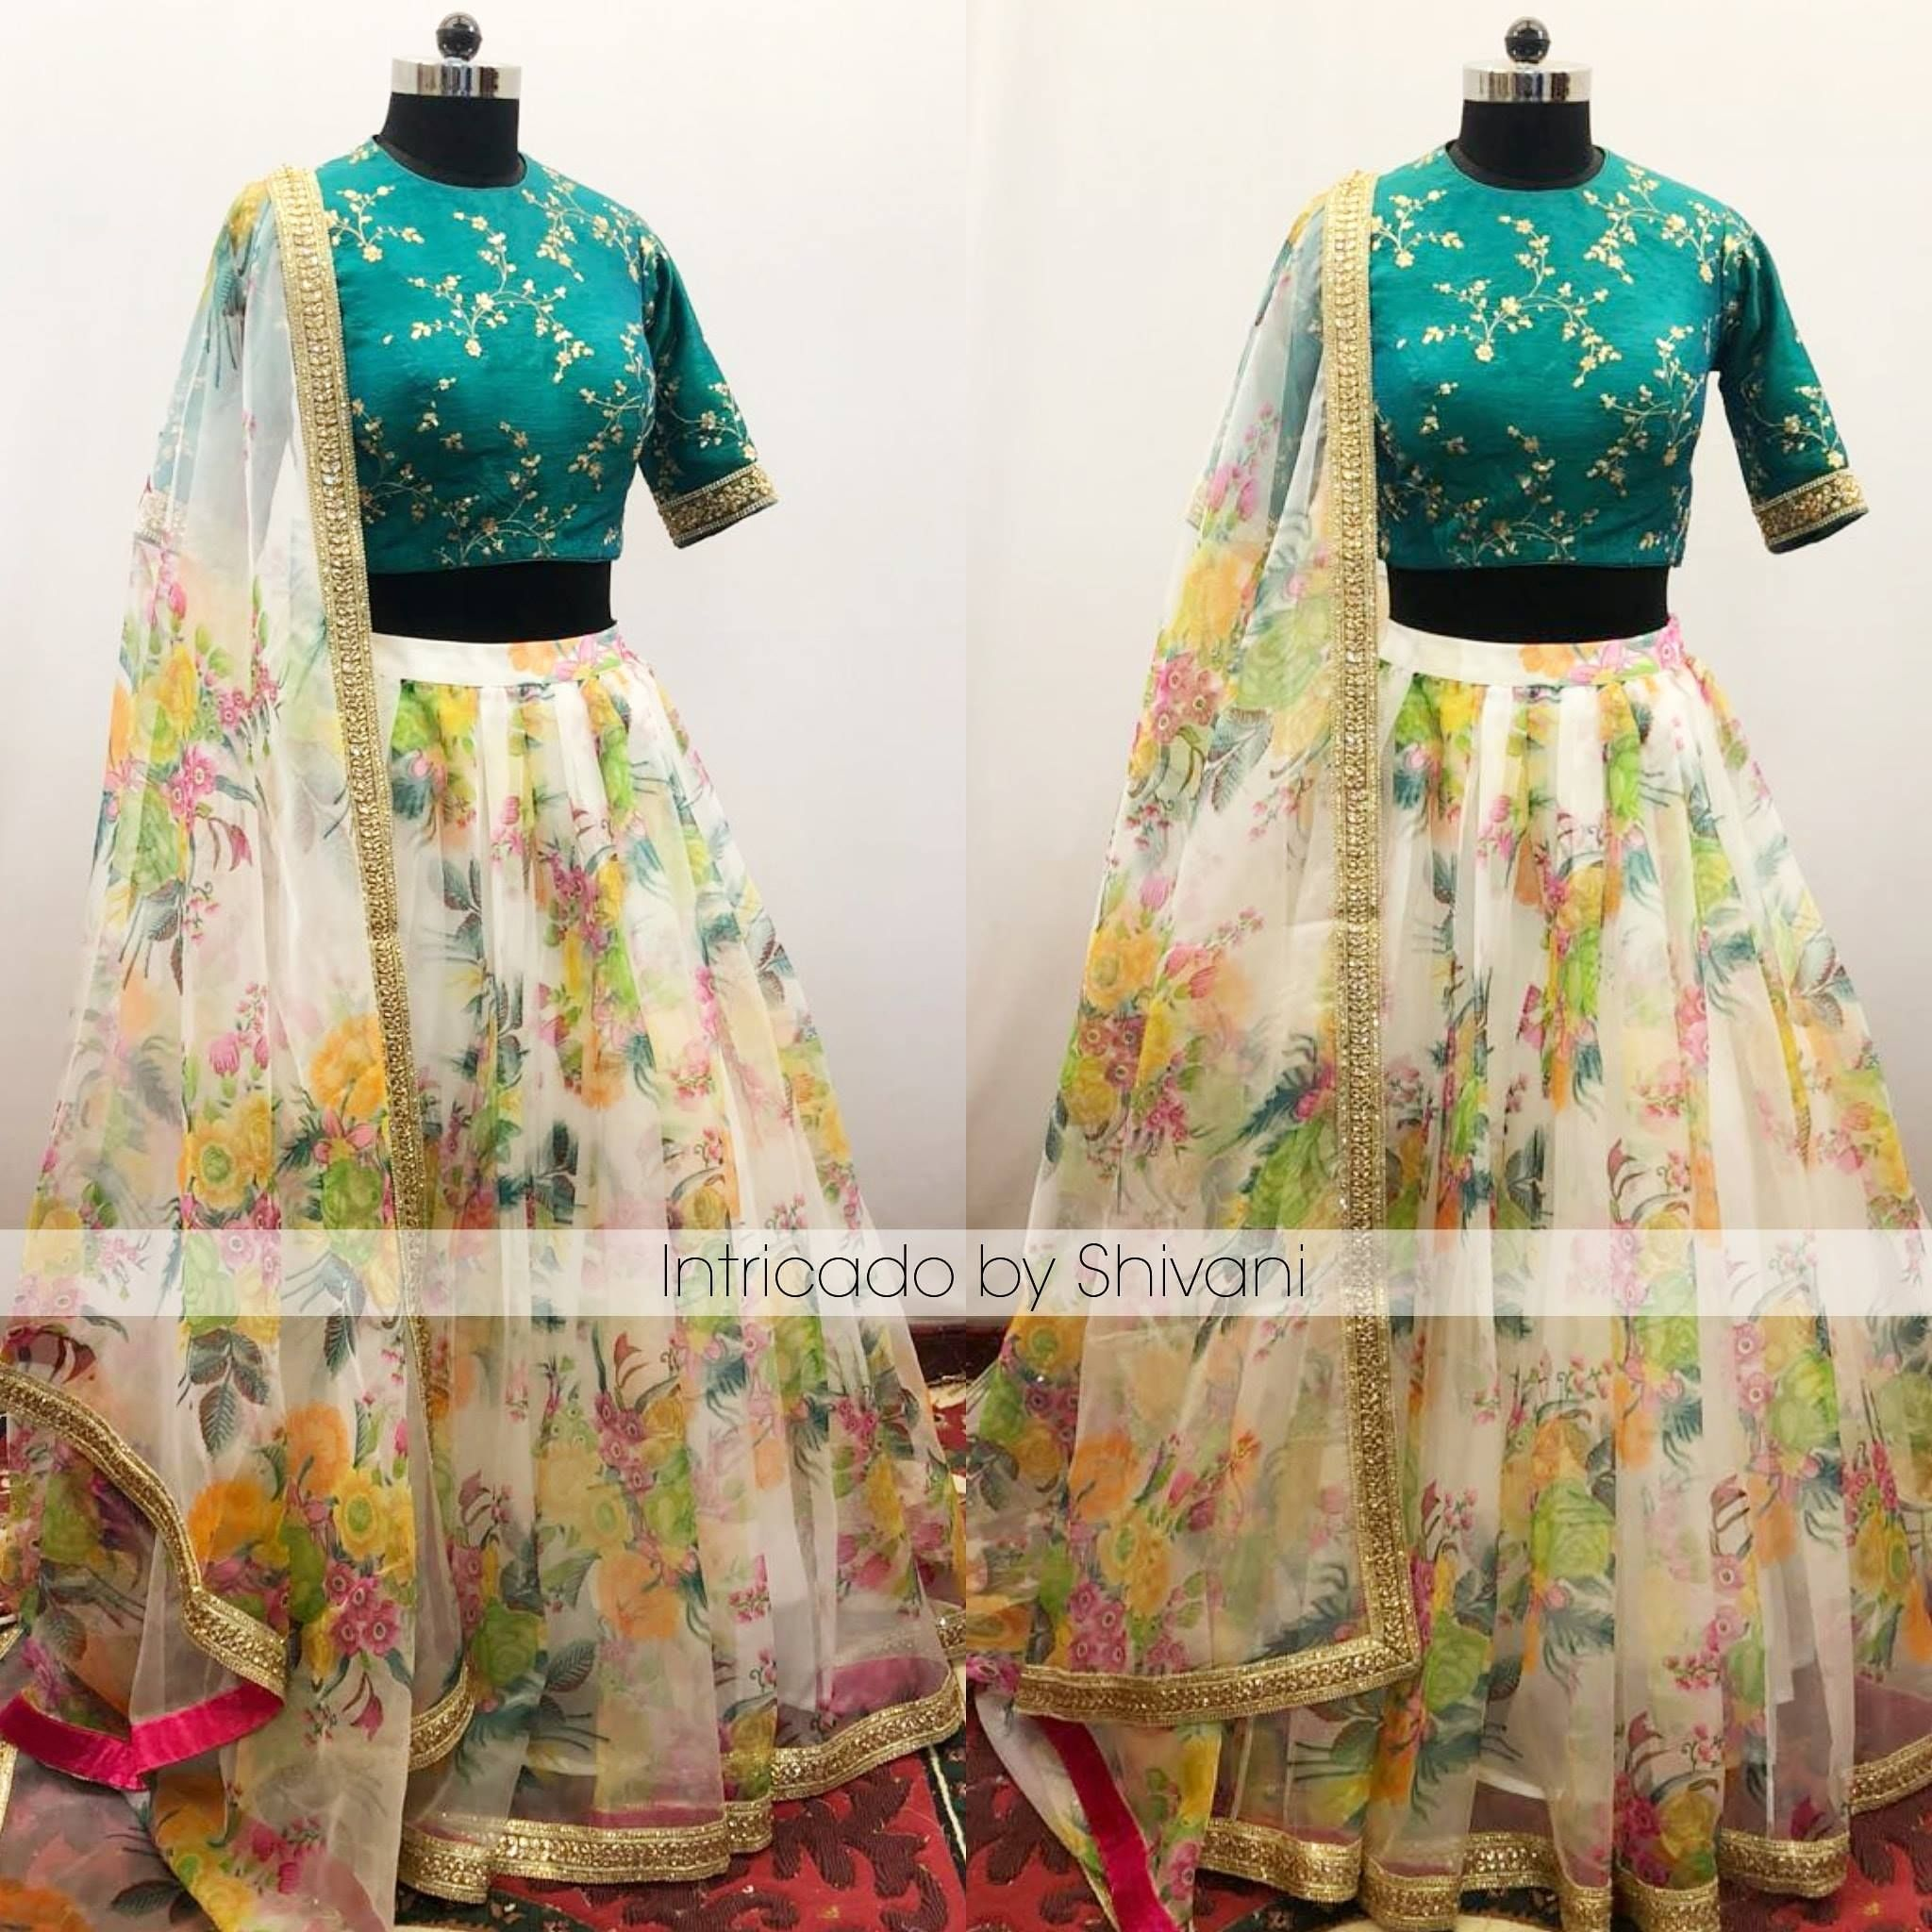 ad3744b77a8c42 Floral lehenga in silk organza ?? Beautiful half white color lehenga with  floral print. High neck blouse with floral design hand embroidery work.